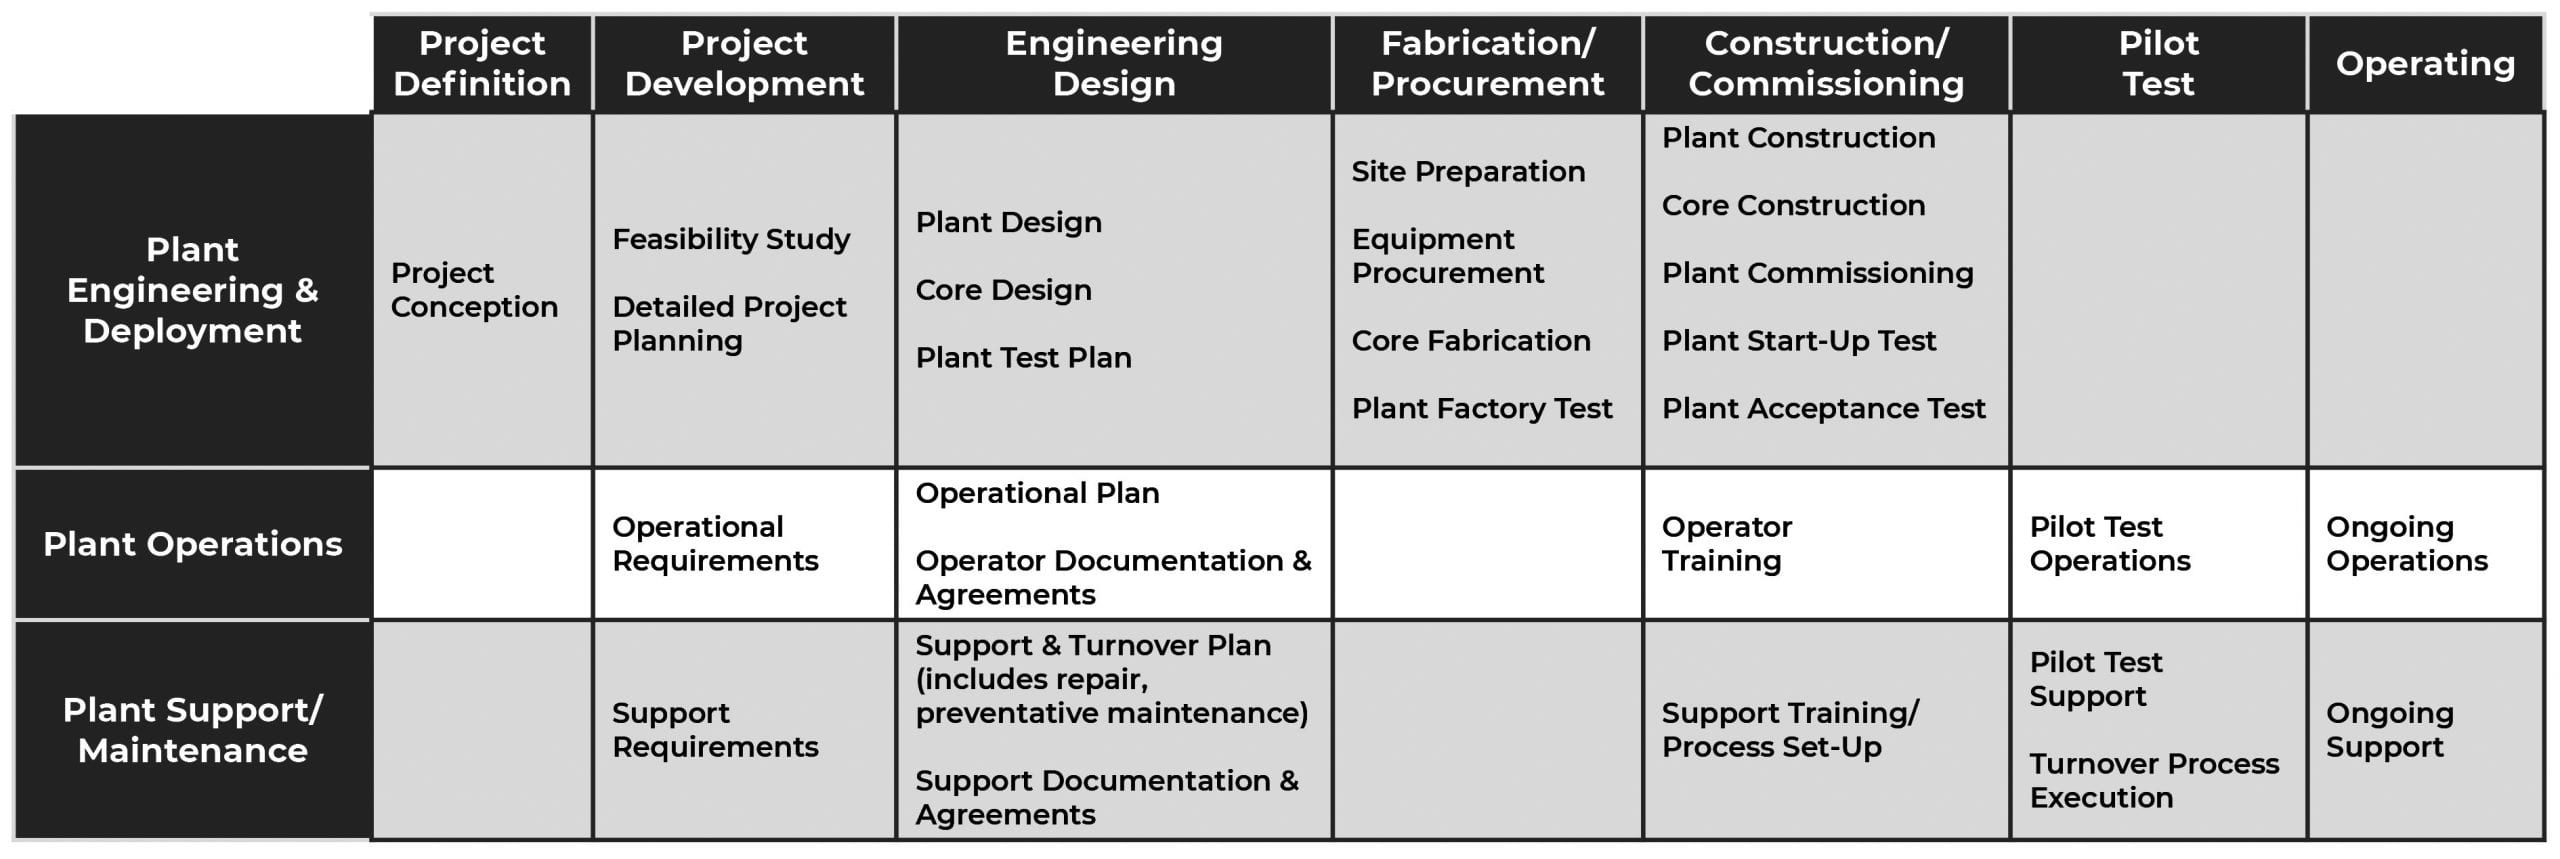 engineering services chart